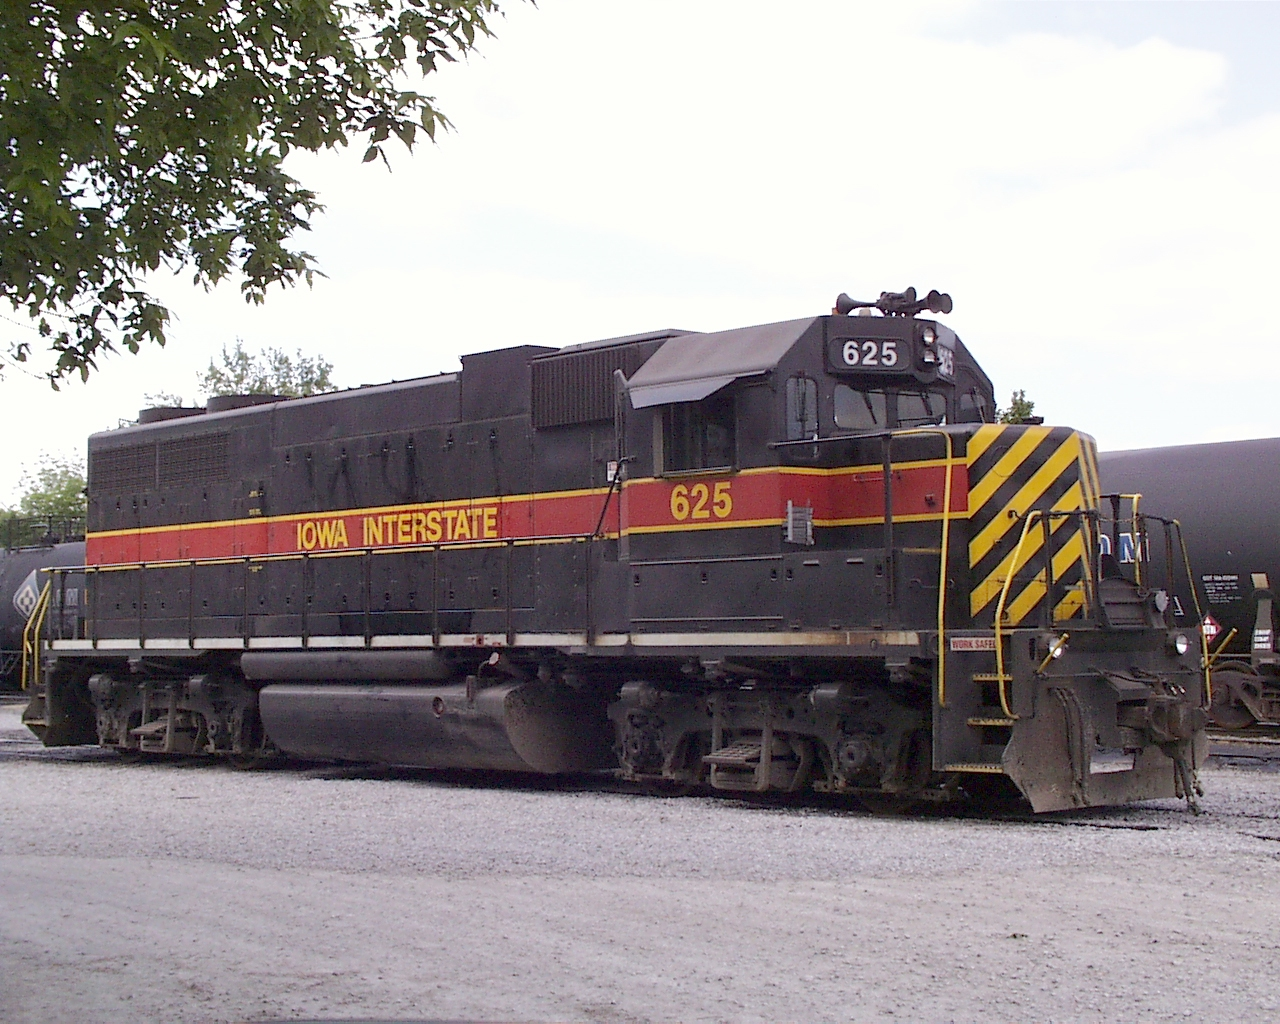 IAIS 625 at Iowa City, IA on 13-May-2000